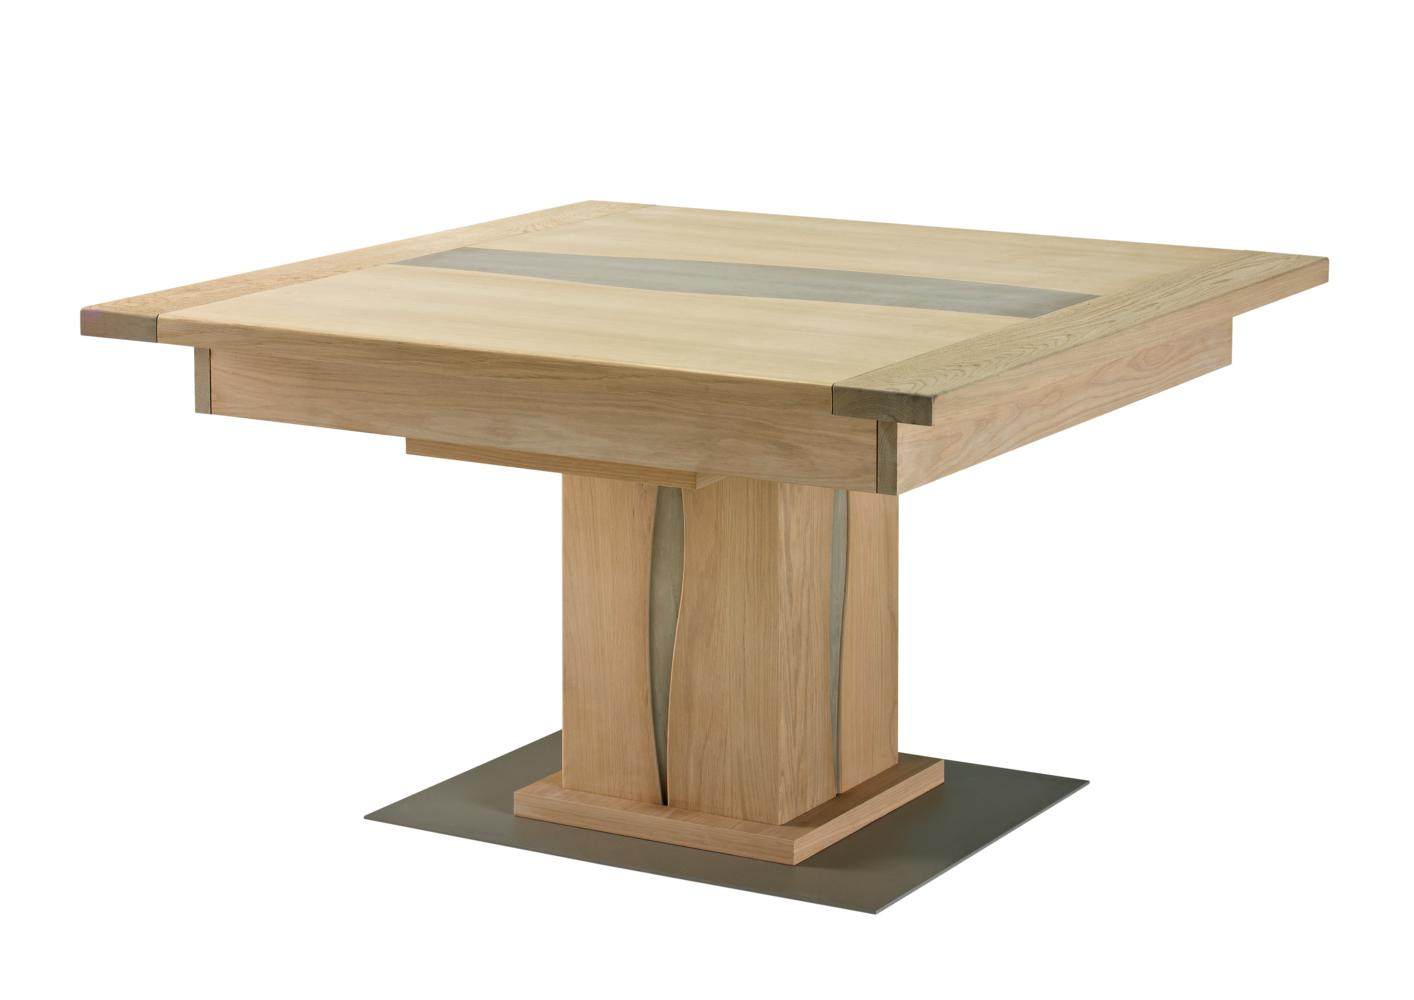 Table avec pied central for Salle a manger table ronde pied central